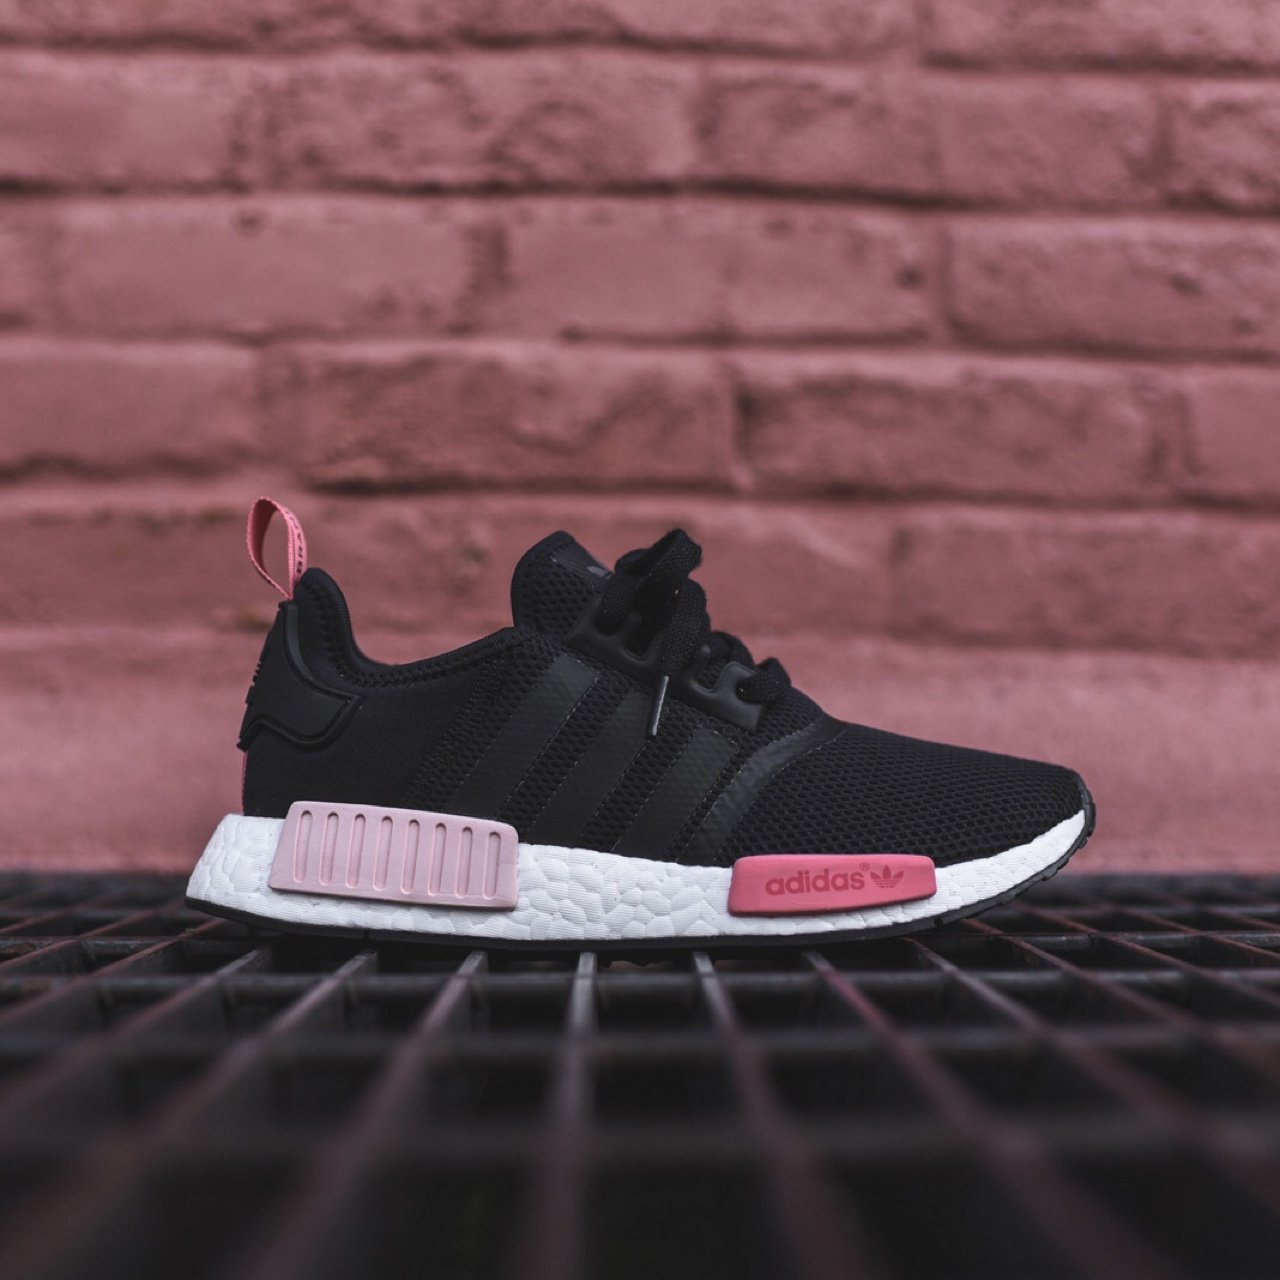 31407a9f8501f ADIDAS NMD RUNNER CORE BLACK PEACH PINK - new with tag and - Depop